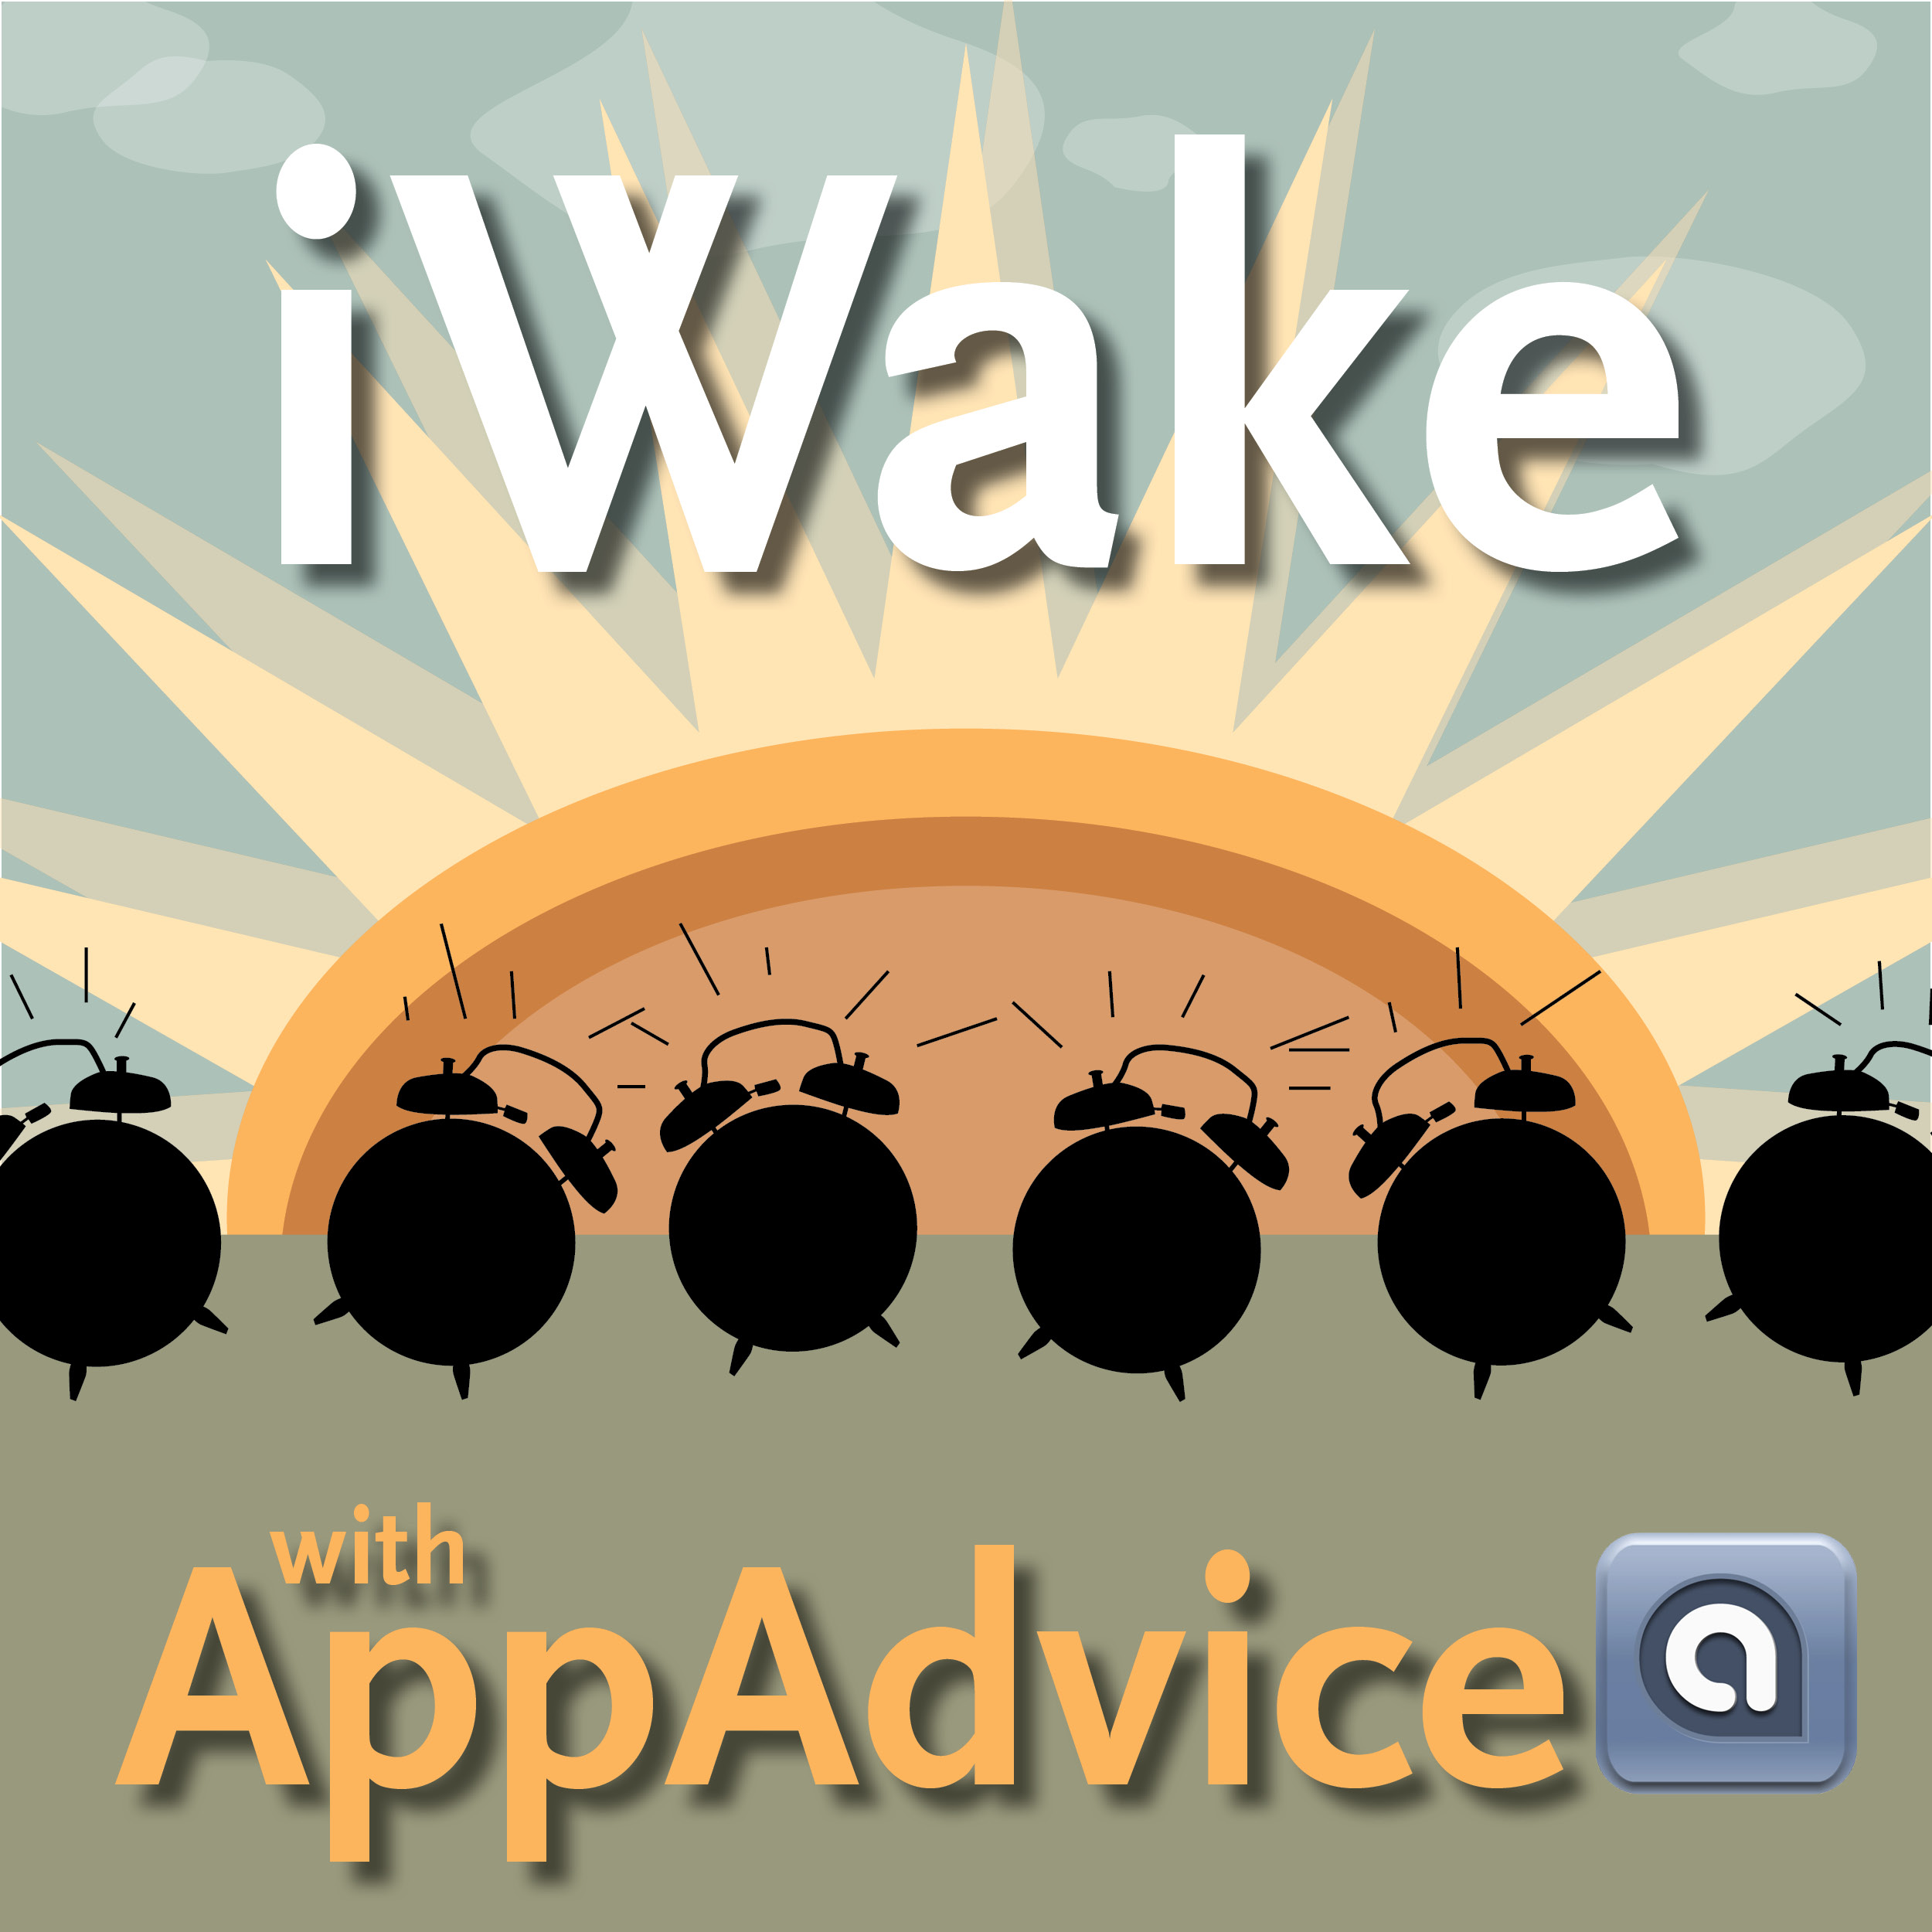 iWake With AppAdvice For Friday Now Available